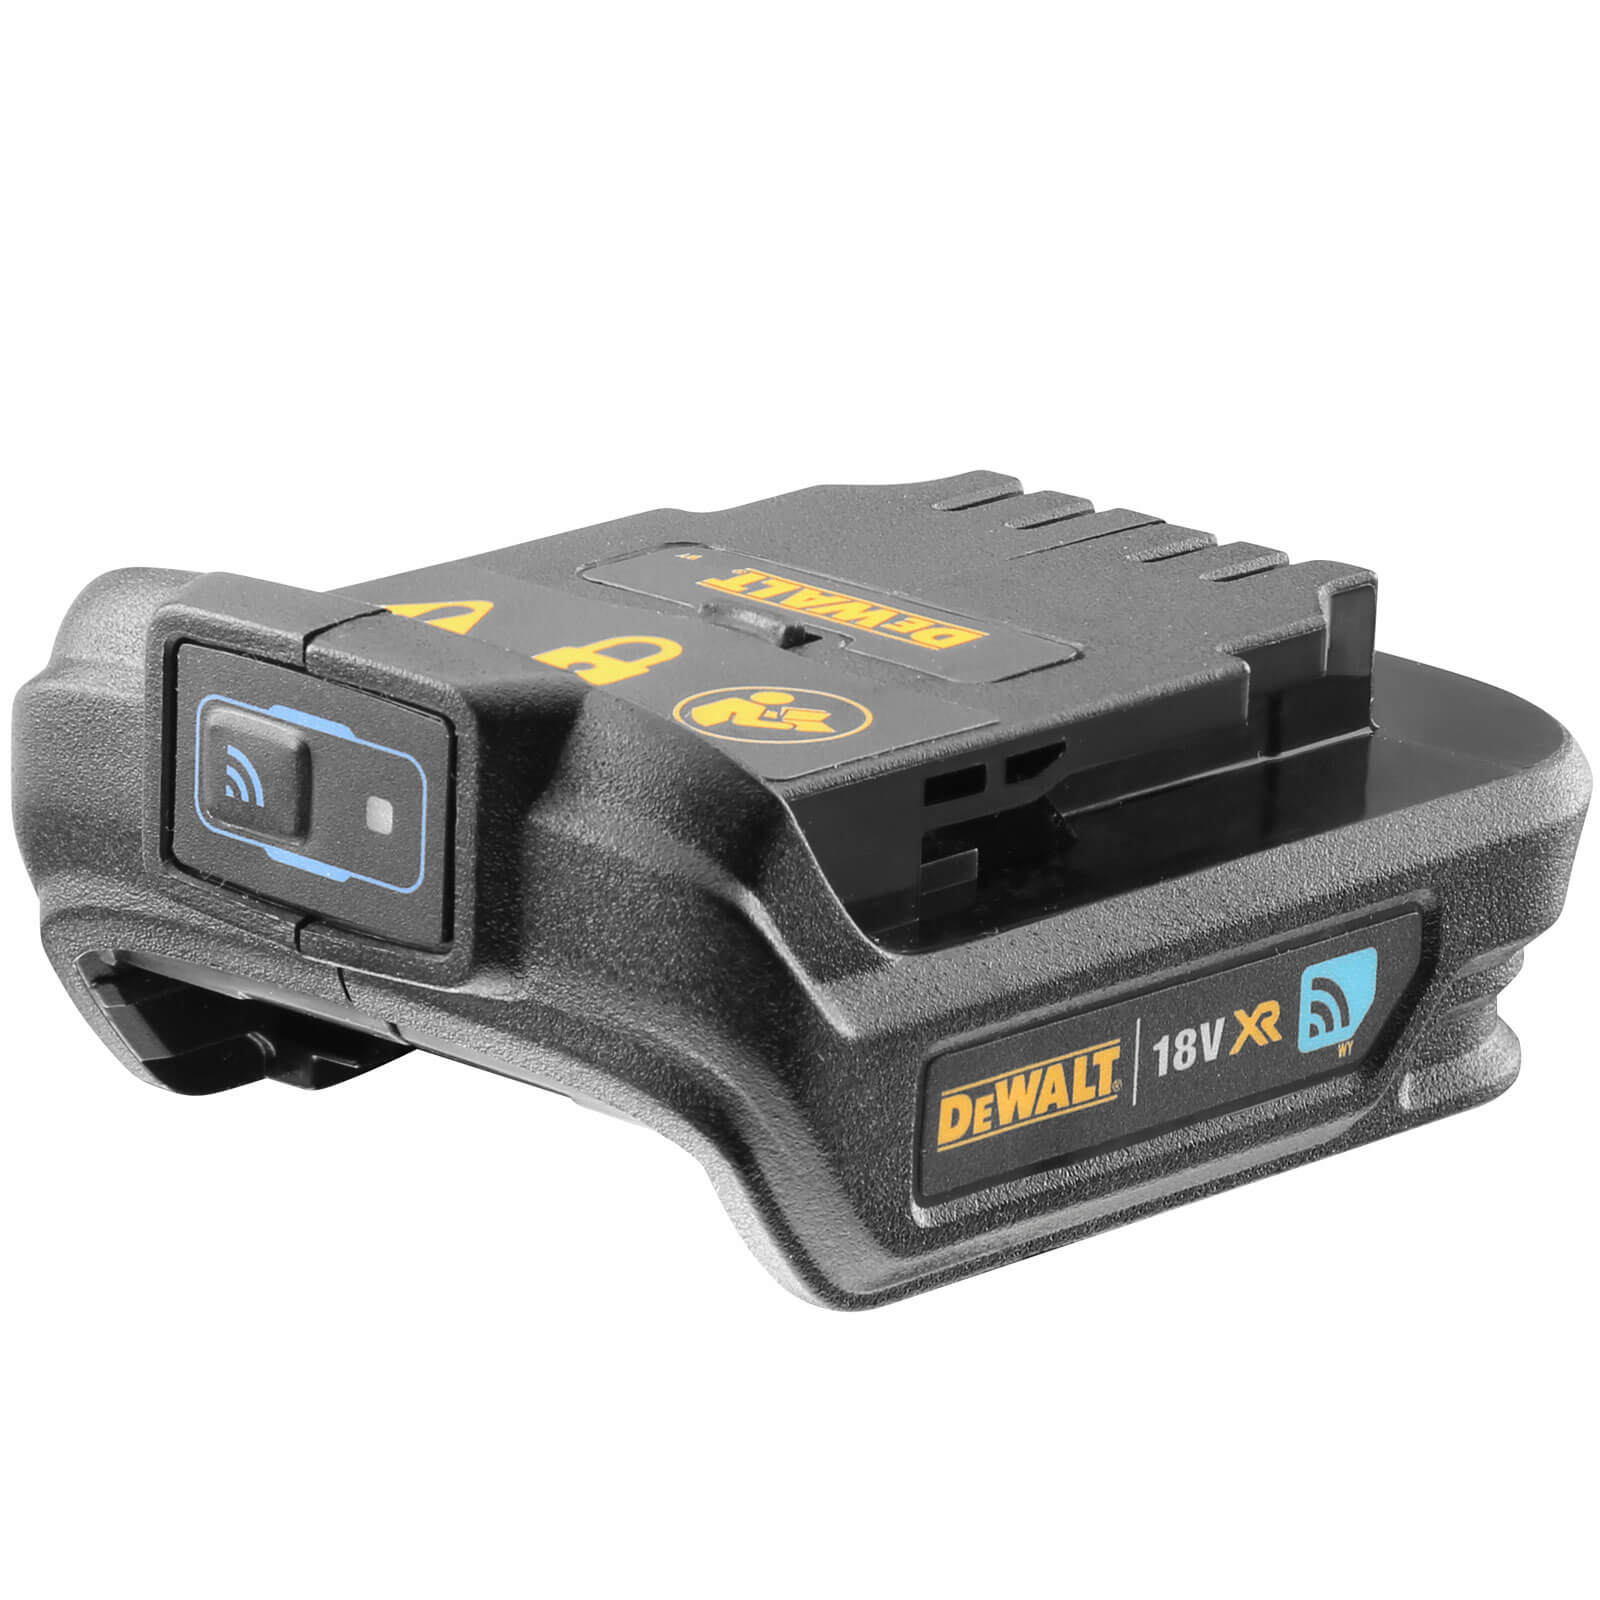 Image of DeWalt DCE040 Tool Connect 18v XR Battery Connector